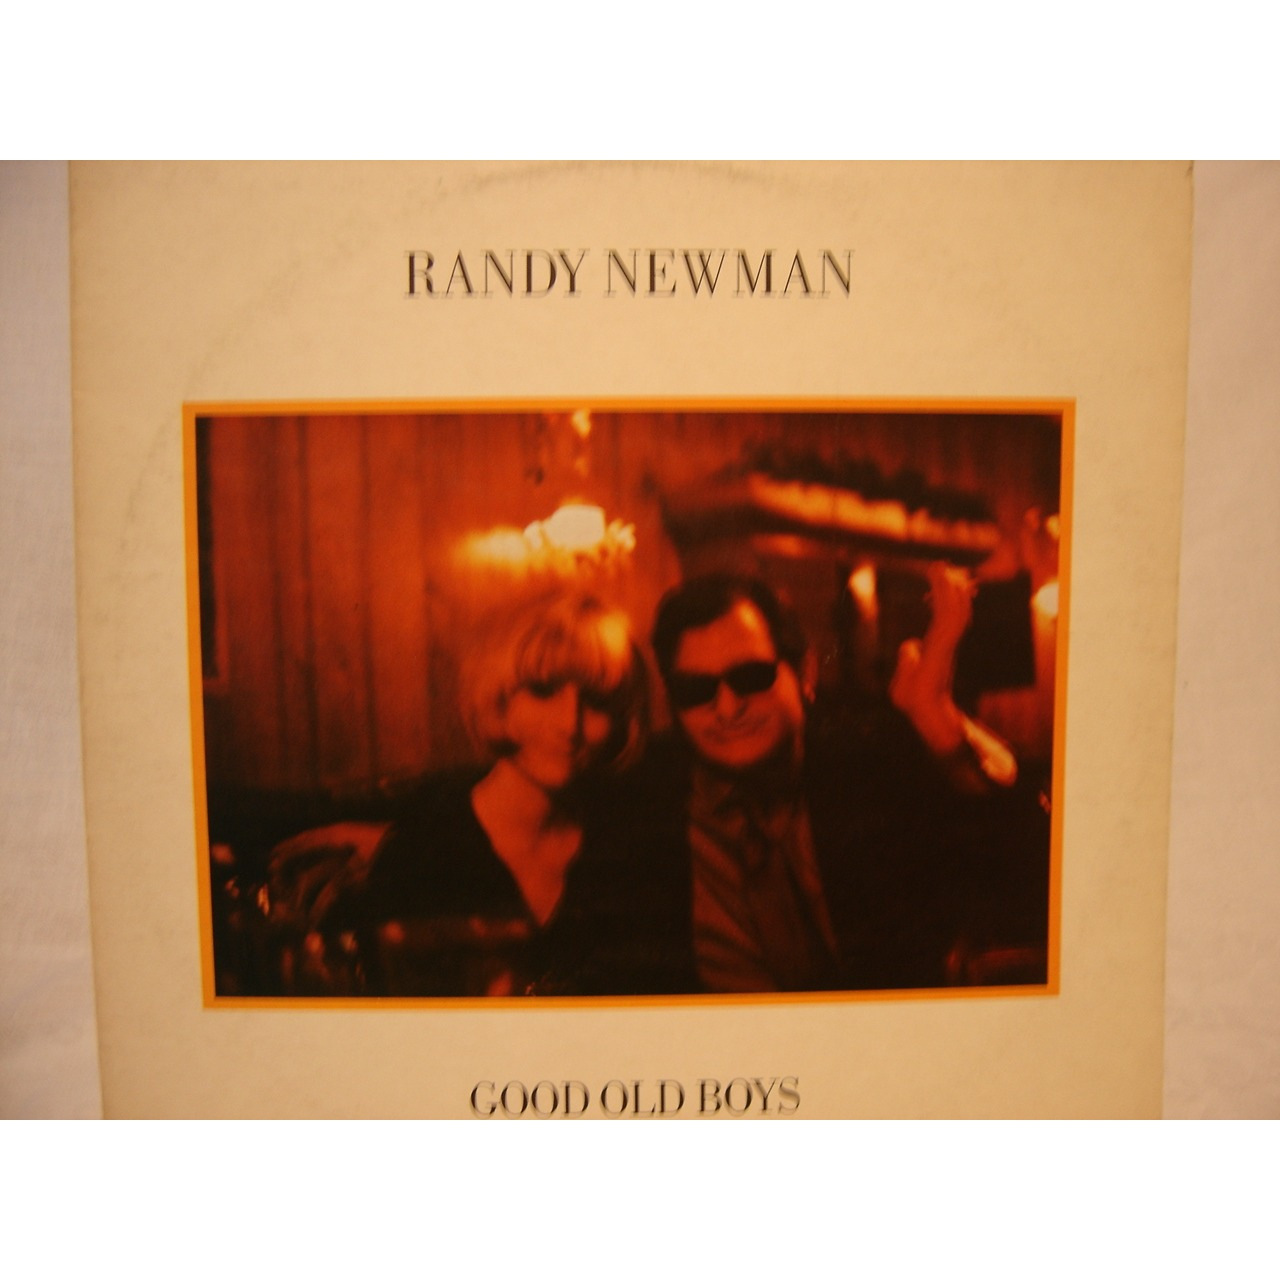 RANDY NEWMAN GOOD OLD BOYS